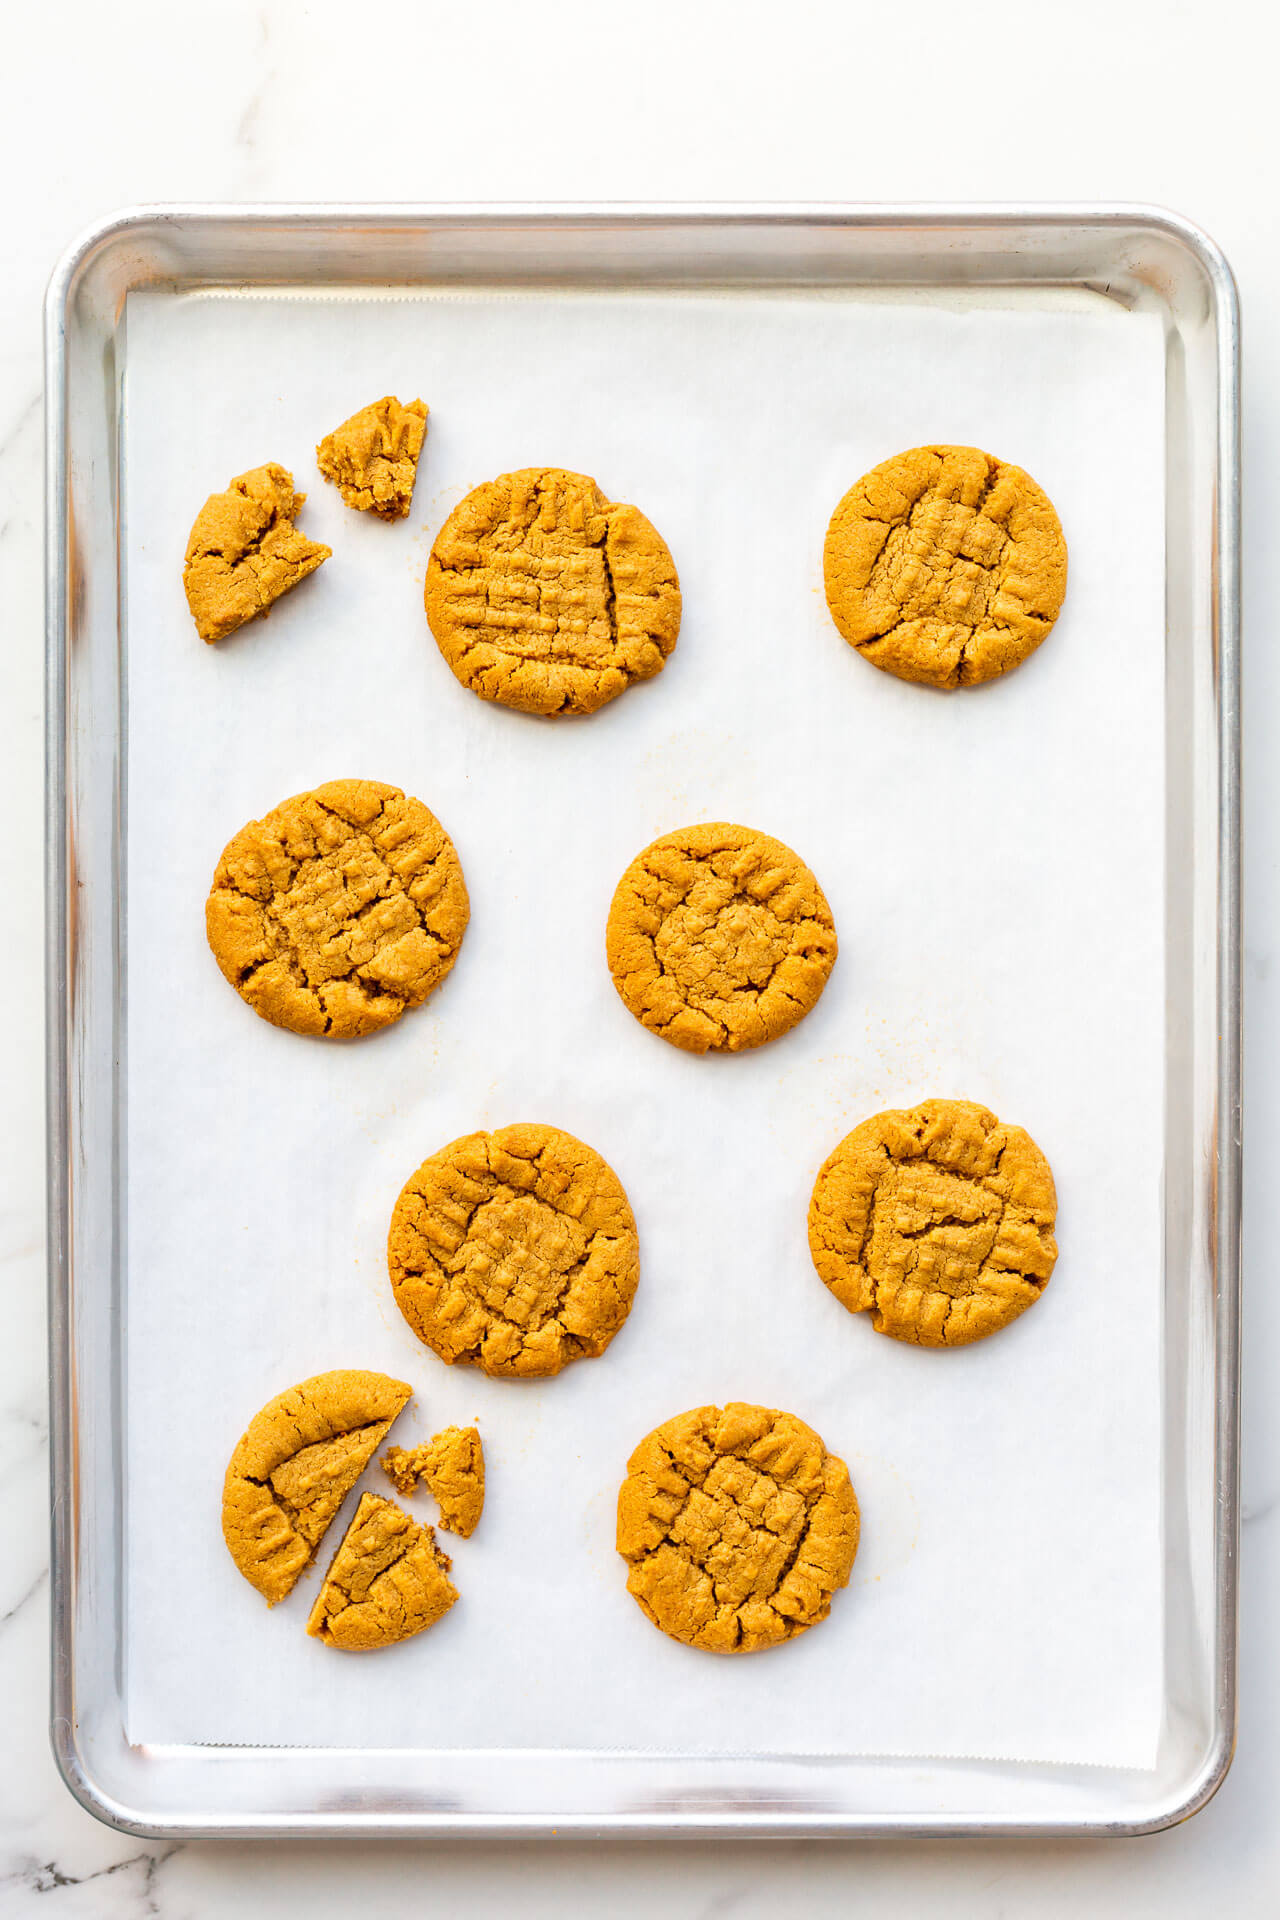 Baked flourless peanut butter cookies on a sheet pan lined with parchment with signature criss cross pattern